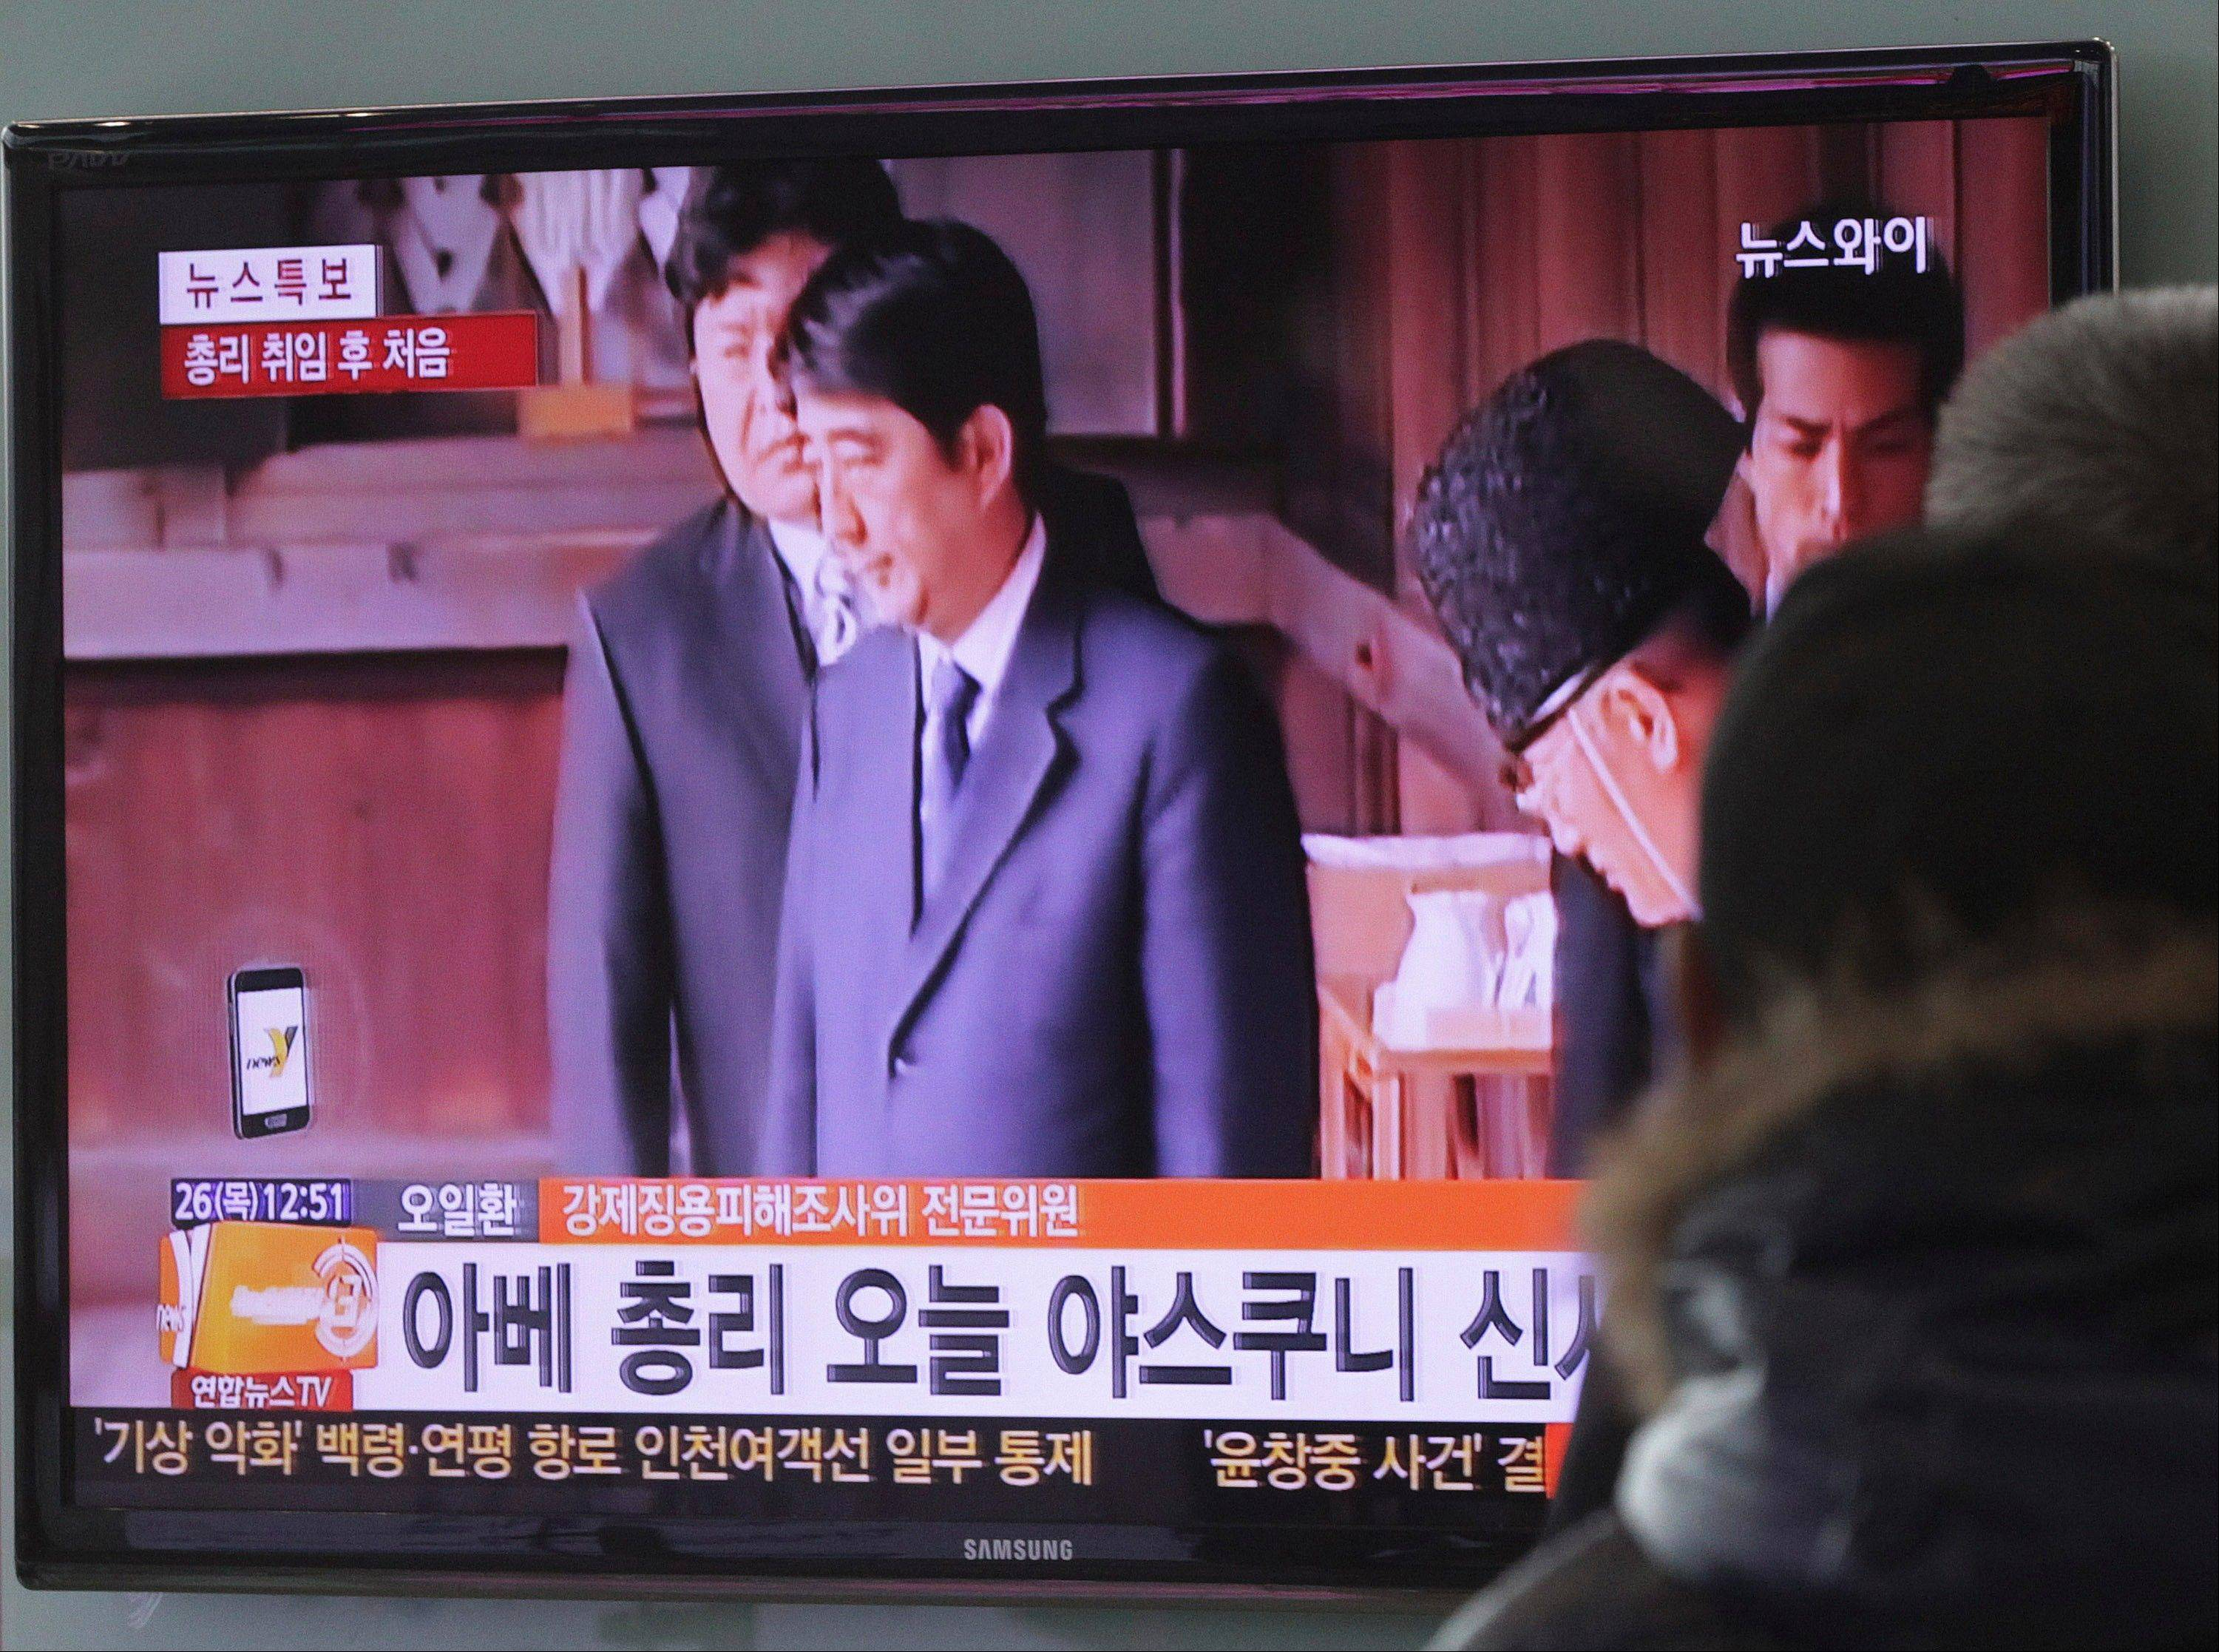 People watch a TV news program on Japanese Prime Minister Shinzo Abe�s war shrine visit, at the Seoul Railway Station in Seoul, South Korea, Thursday. Abe paid his respects Thursday at a shrine honoring Japan�s war dead in a move that drew sharp rebukes from both China and South Korea who warned that the visit celebrates his country�s militaristic past and heightens concerns that Japan may veer back in that direction.